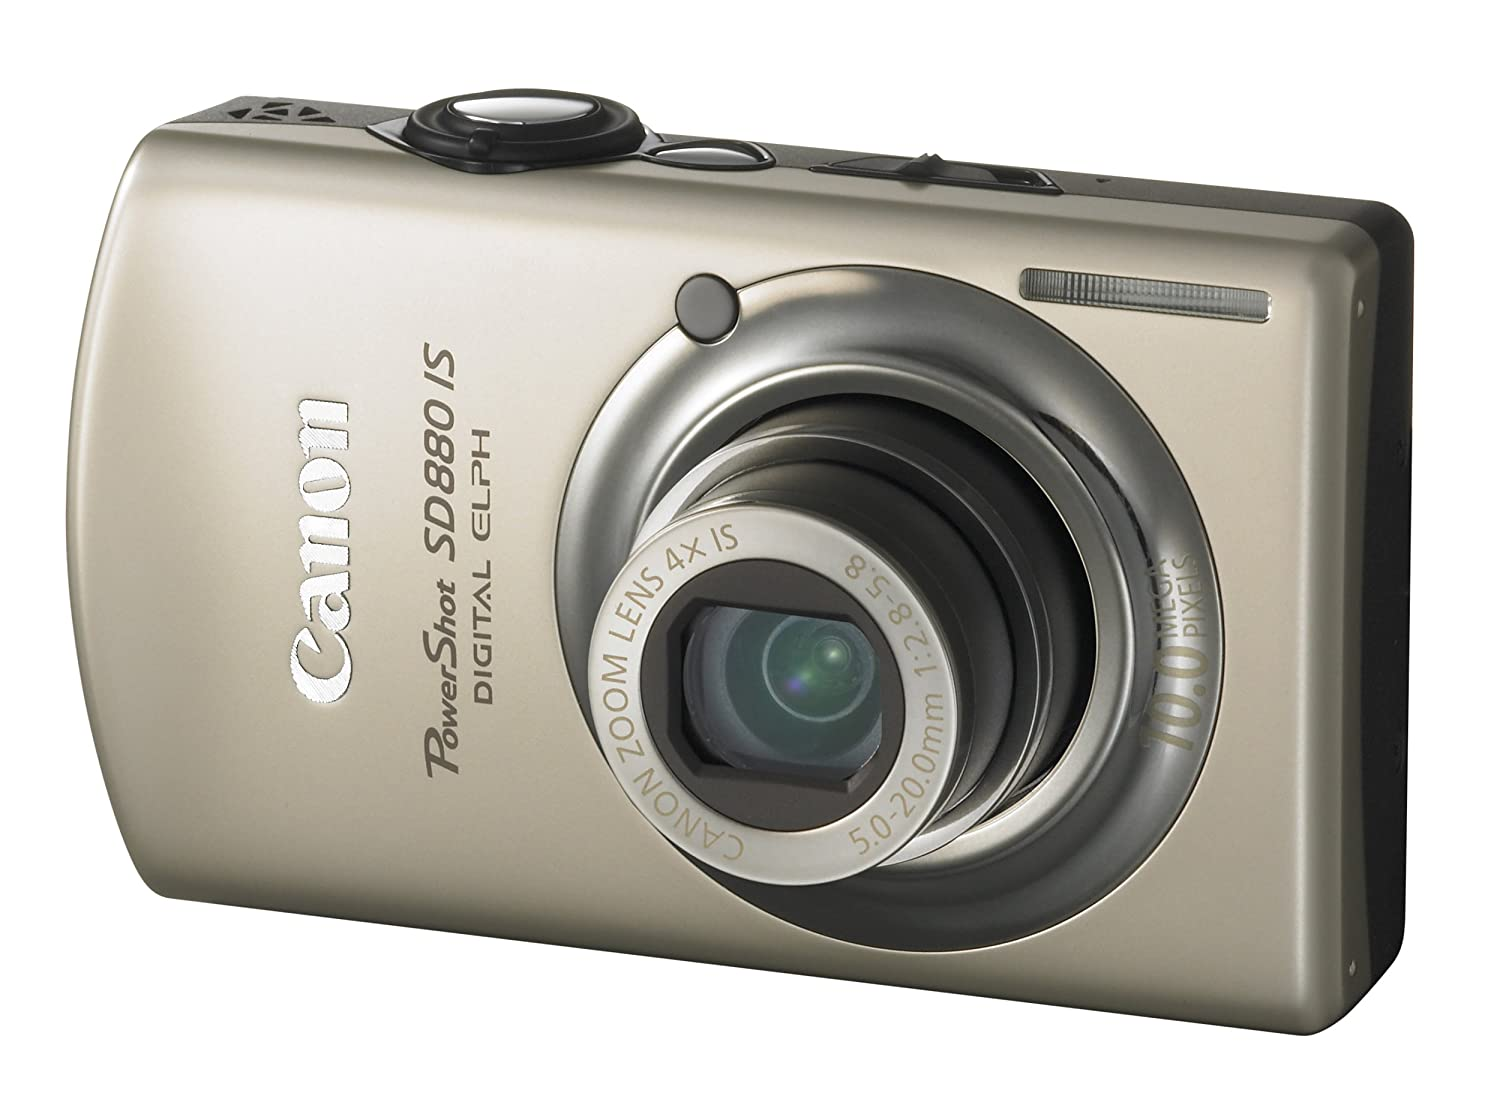 CANON POWERSHOT SD880 IS WINDOWS 7 DRIVER